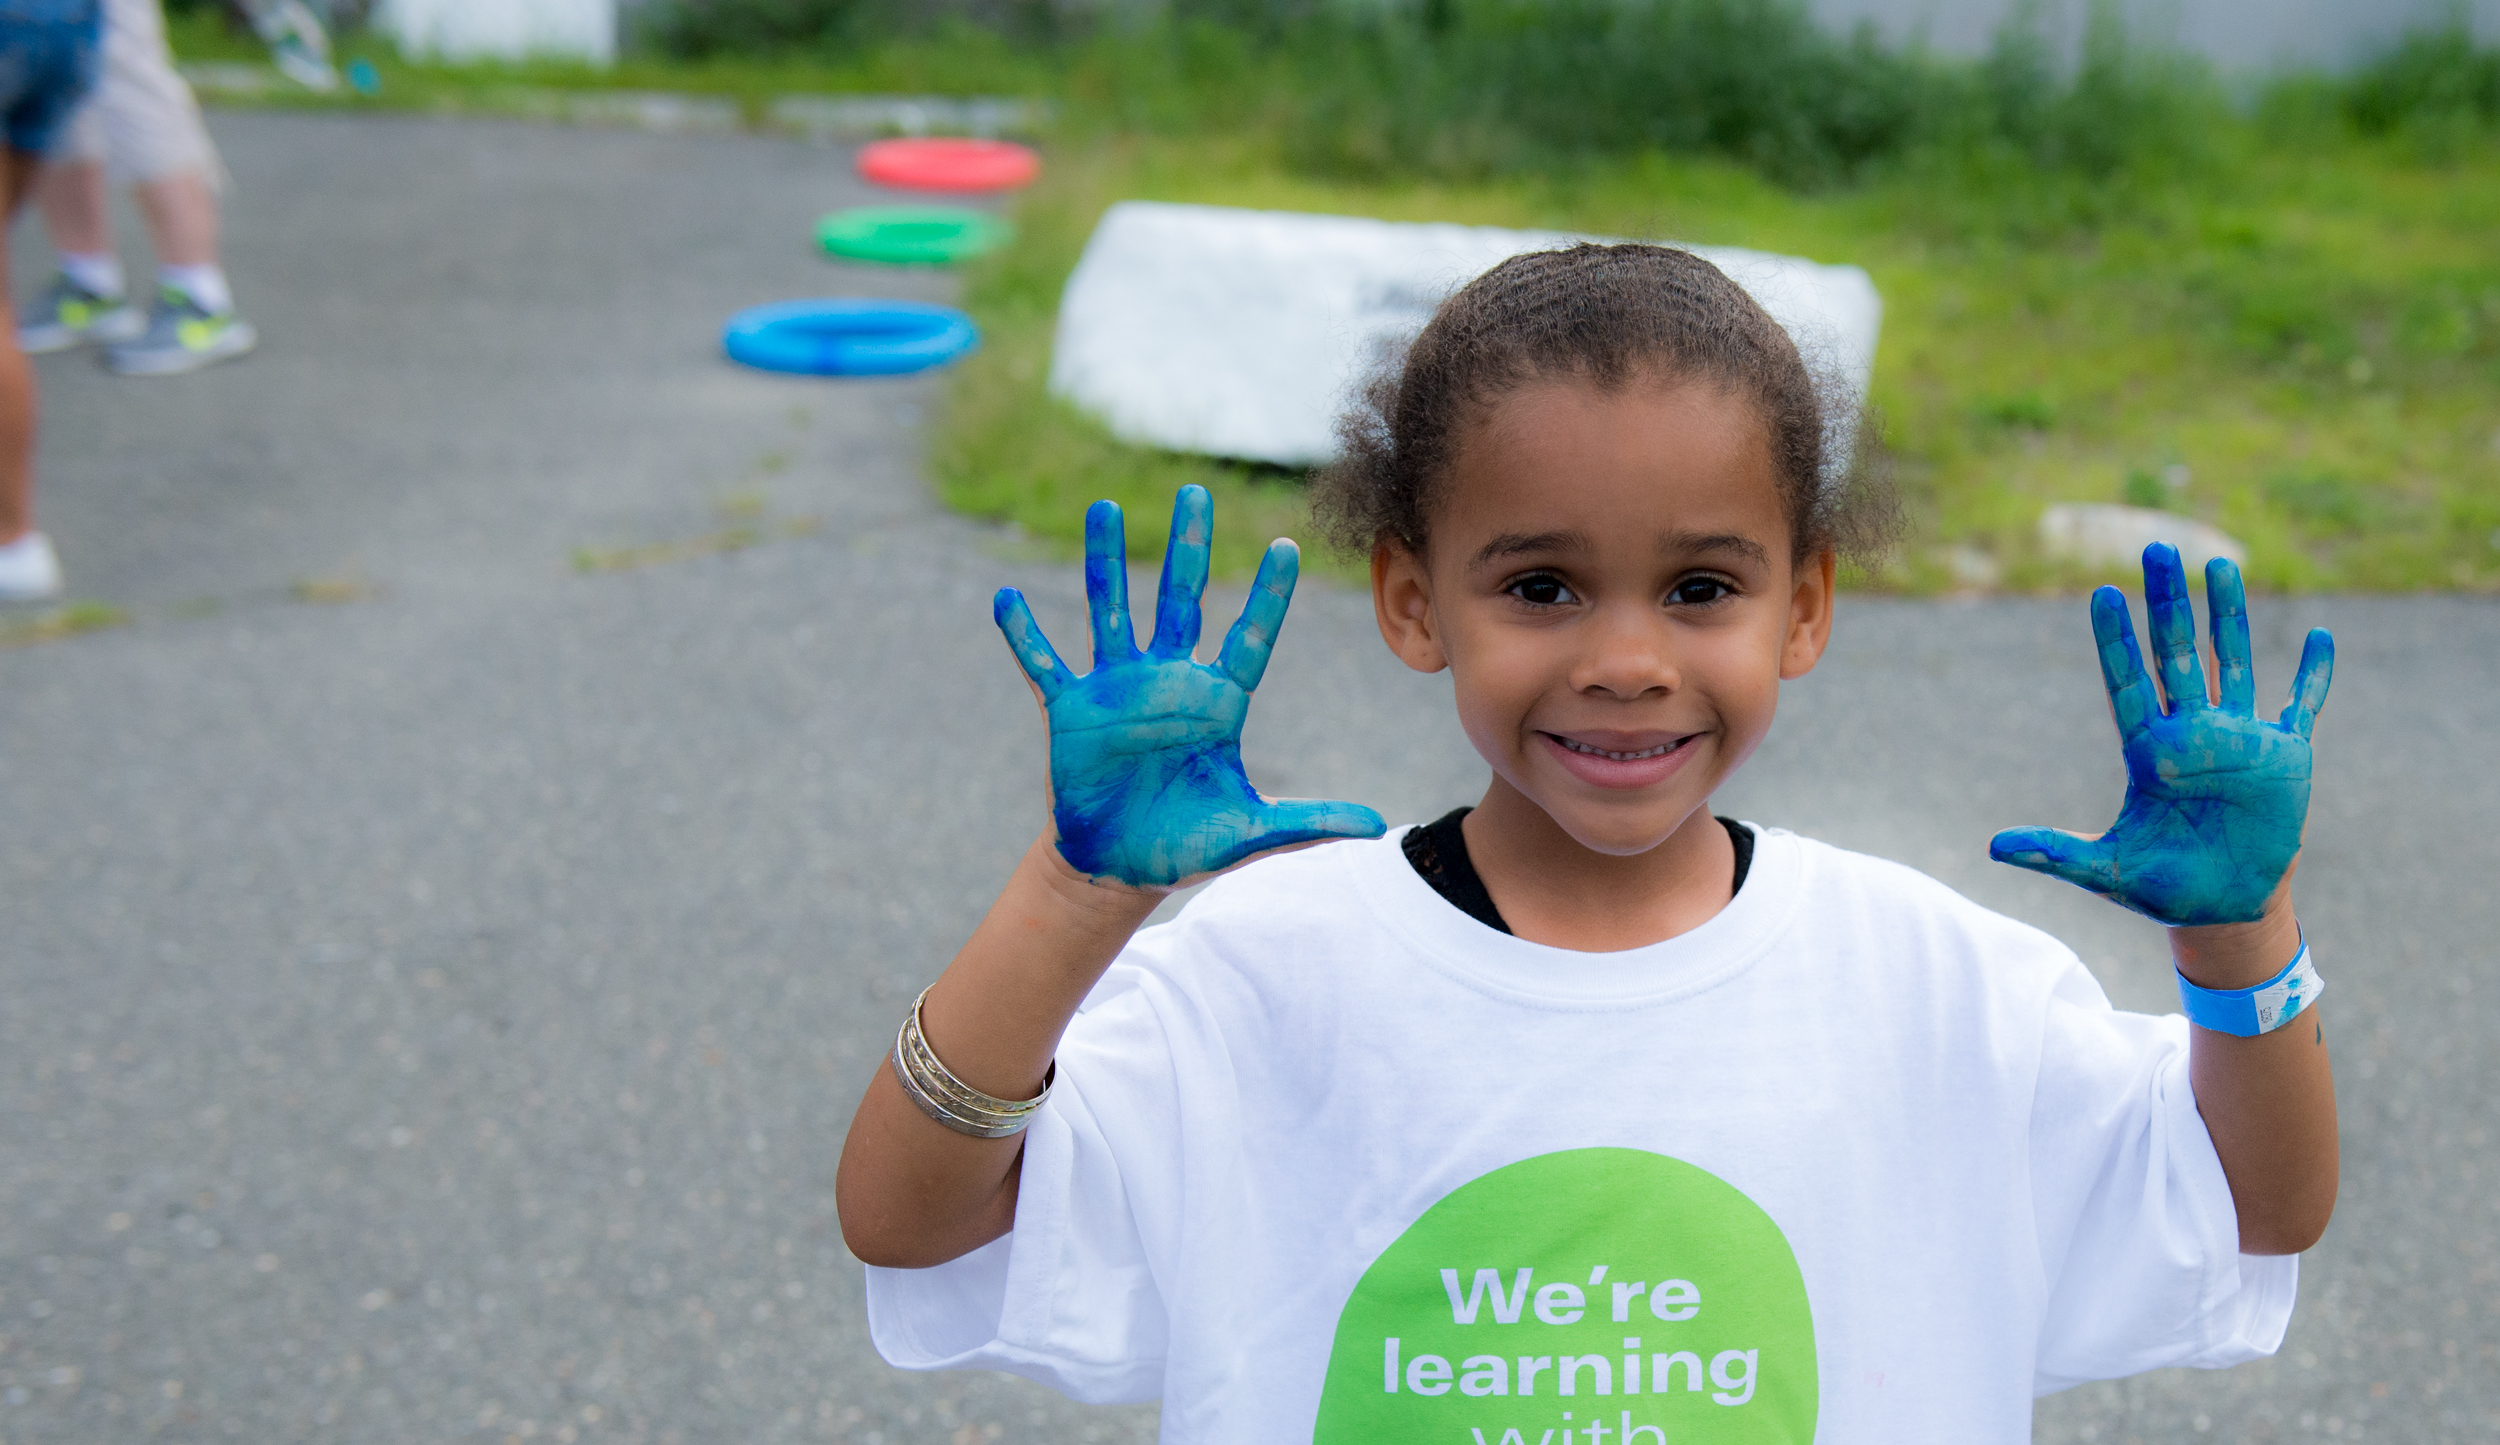 Child raising there hand to show that it is covered in blue paint